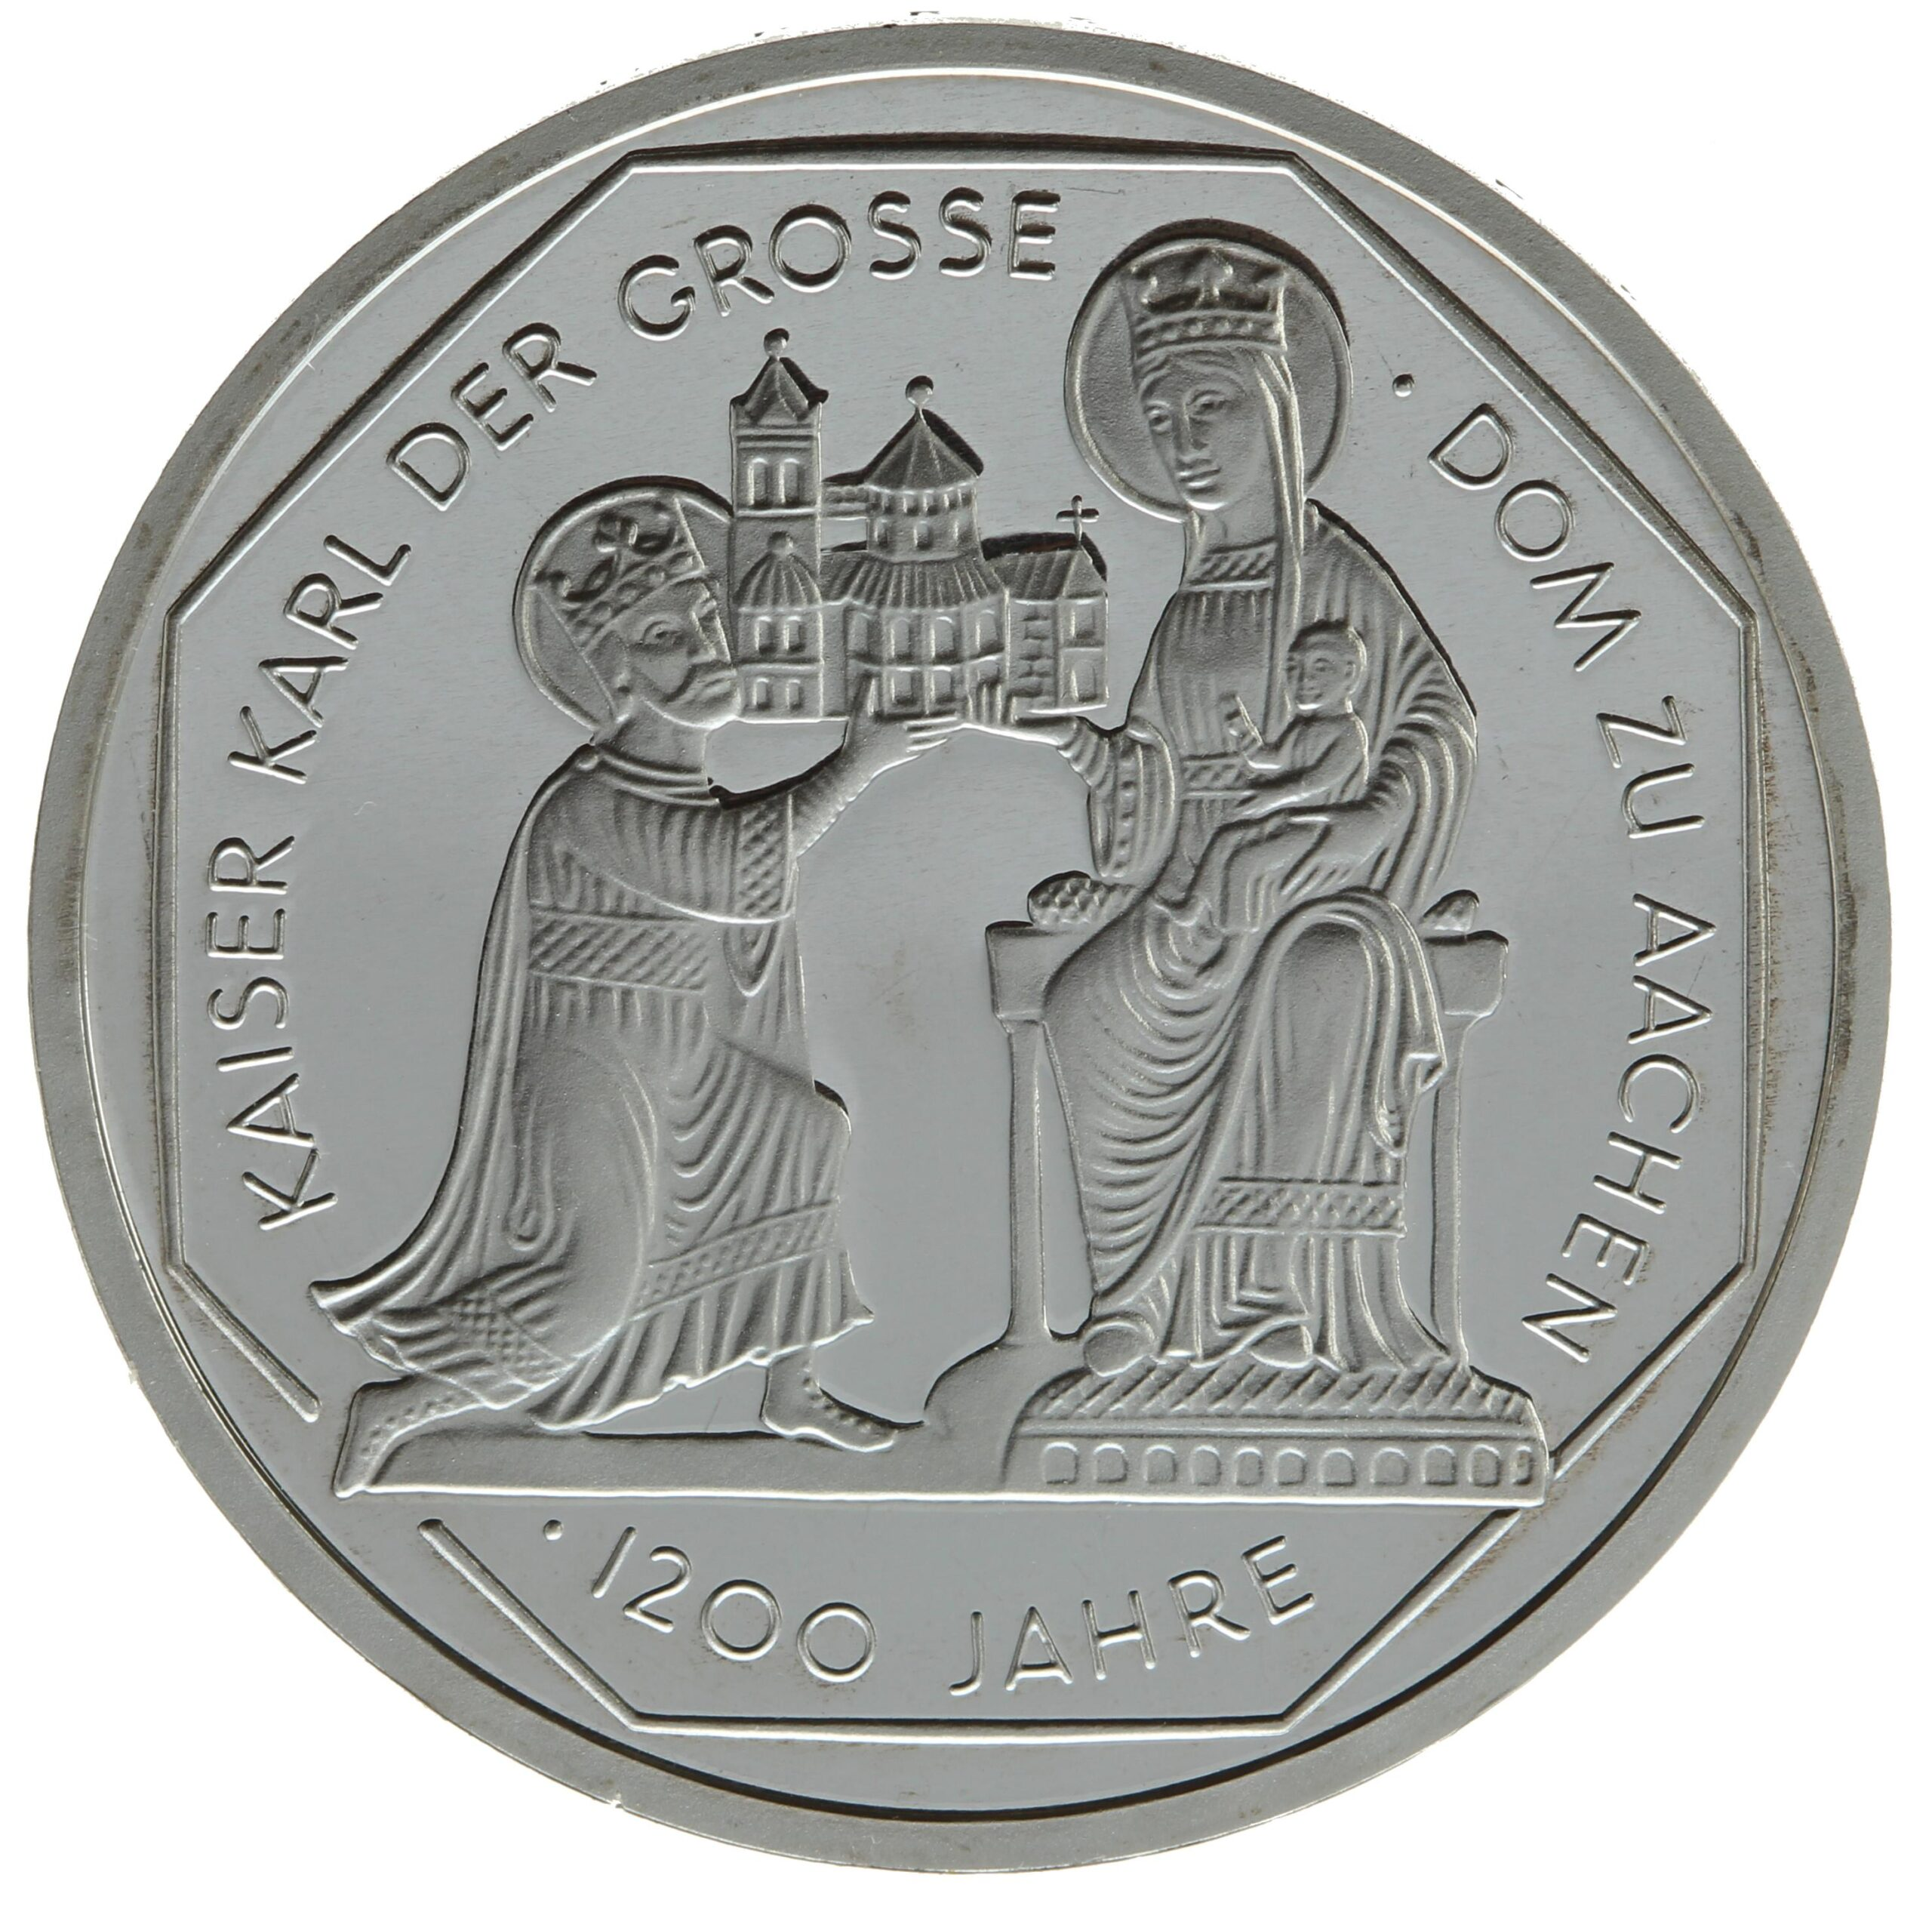 DE 10 Deutsche Mark 2000 G